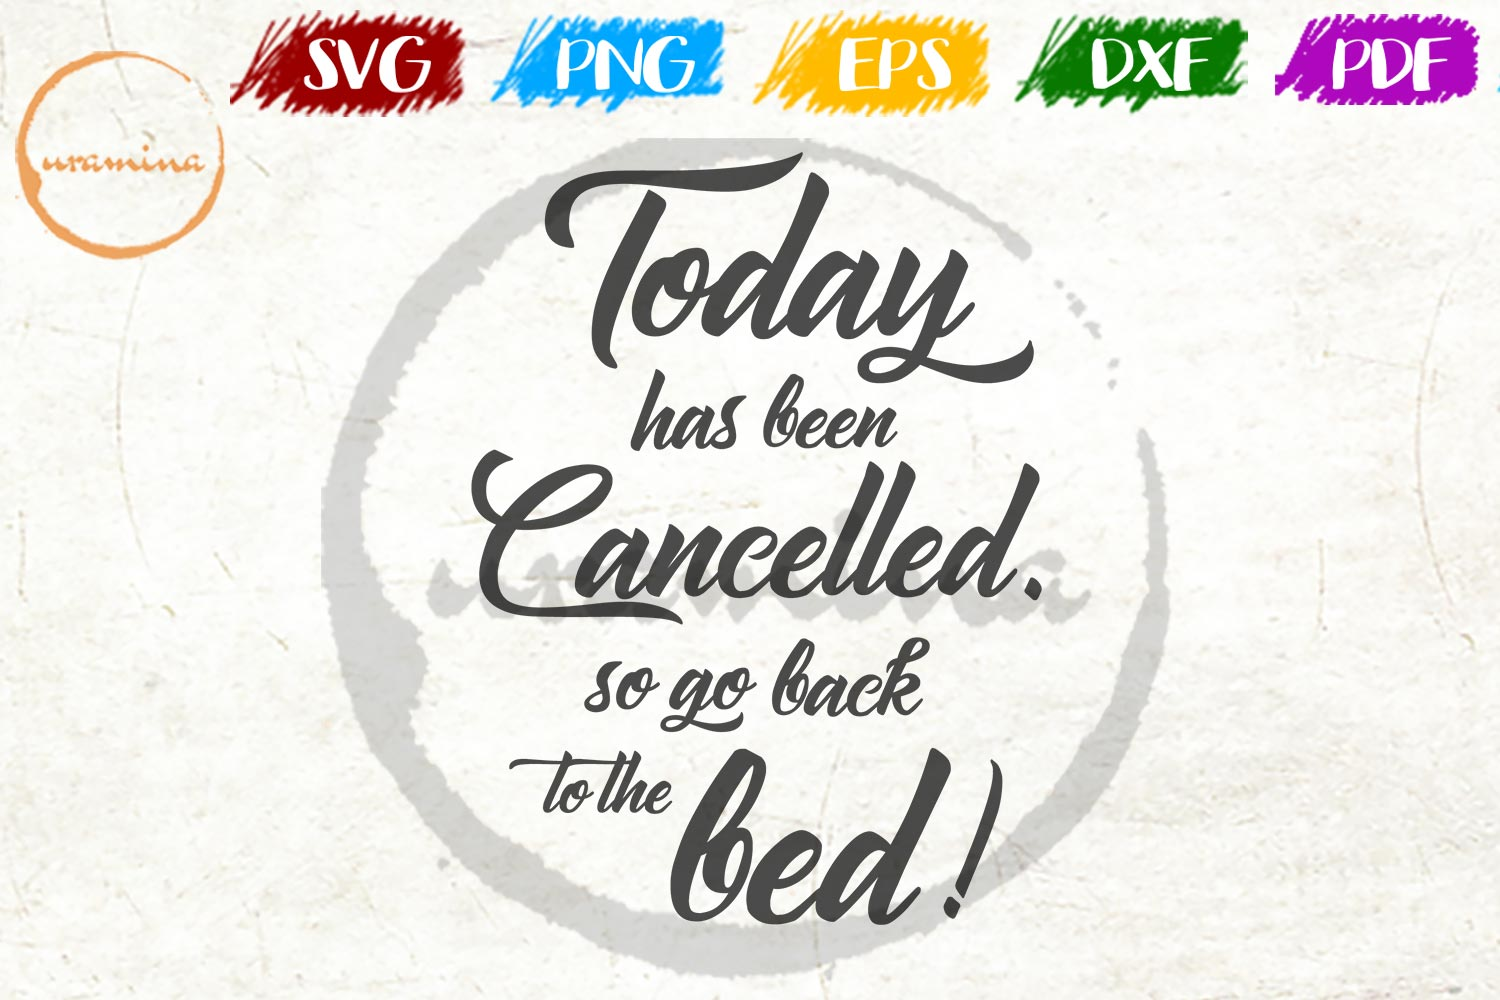 Download Free Today Has Been Cancelled So Go Back Graphic By Uramina for Cricut Explore, Silhouette and other cutting machines.